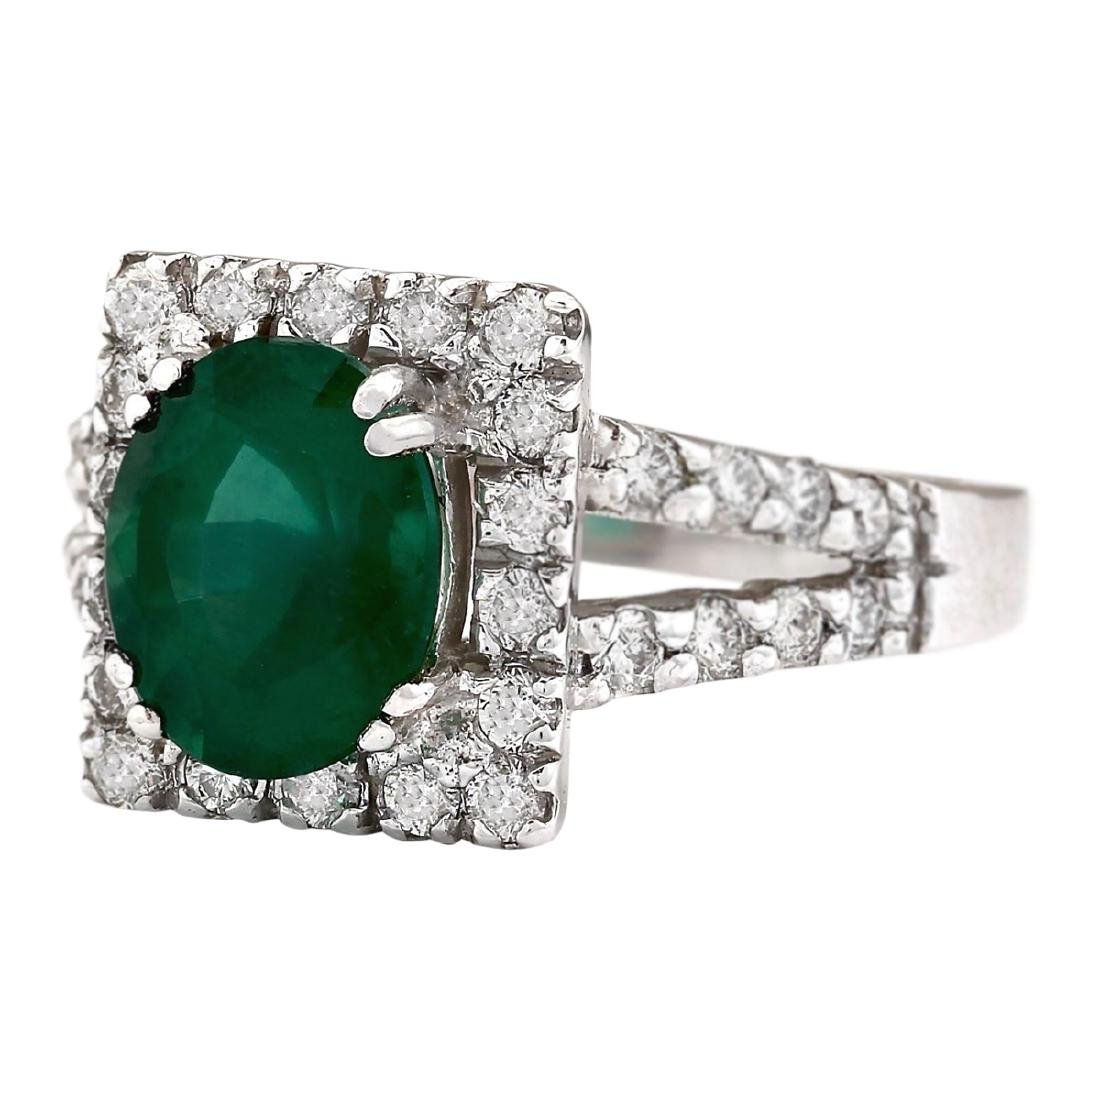 2.89 CTW Natural Emerald And Diamond Ring In 18K White - 2